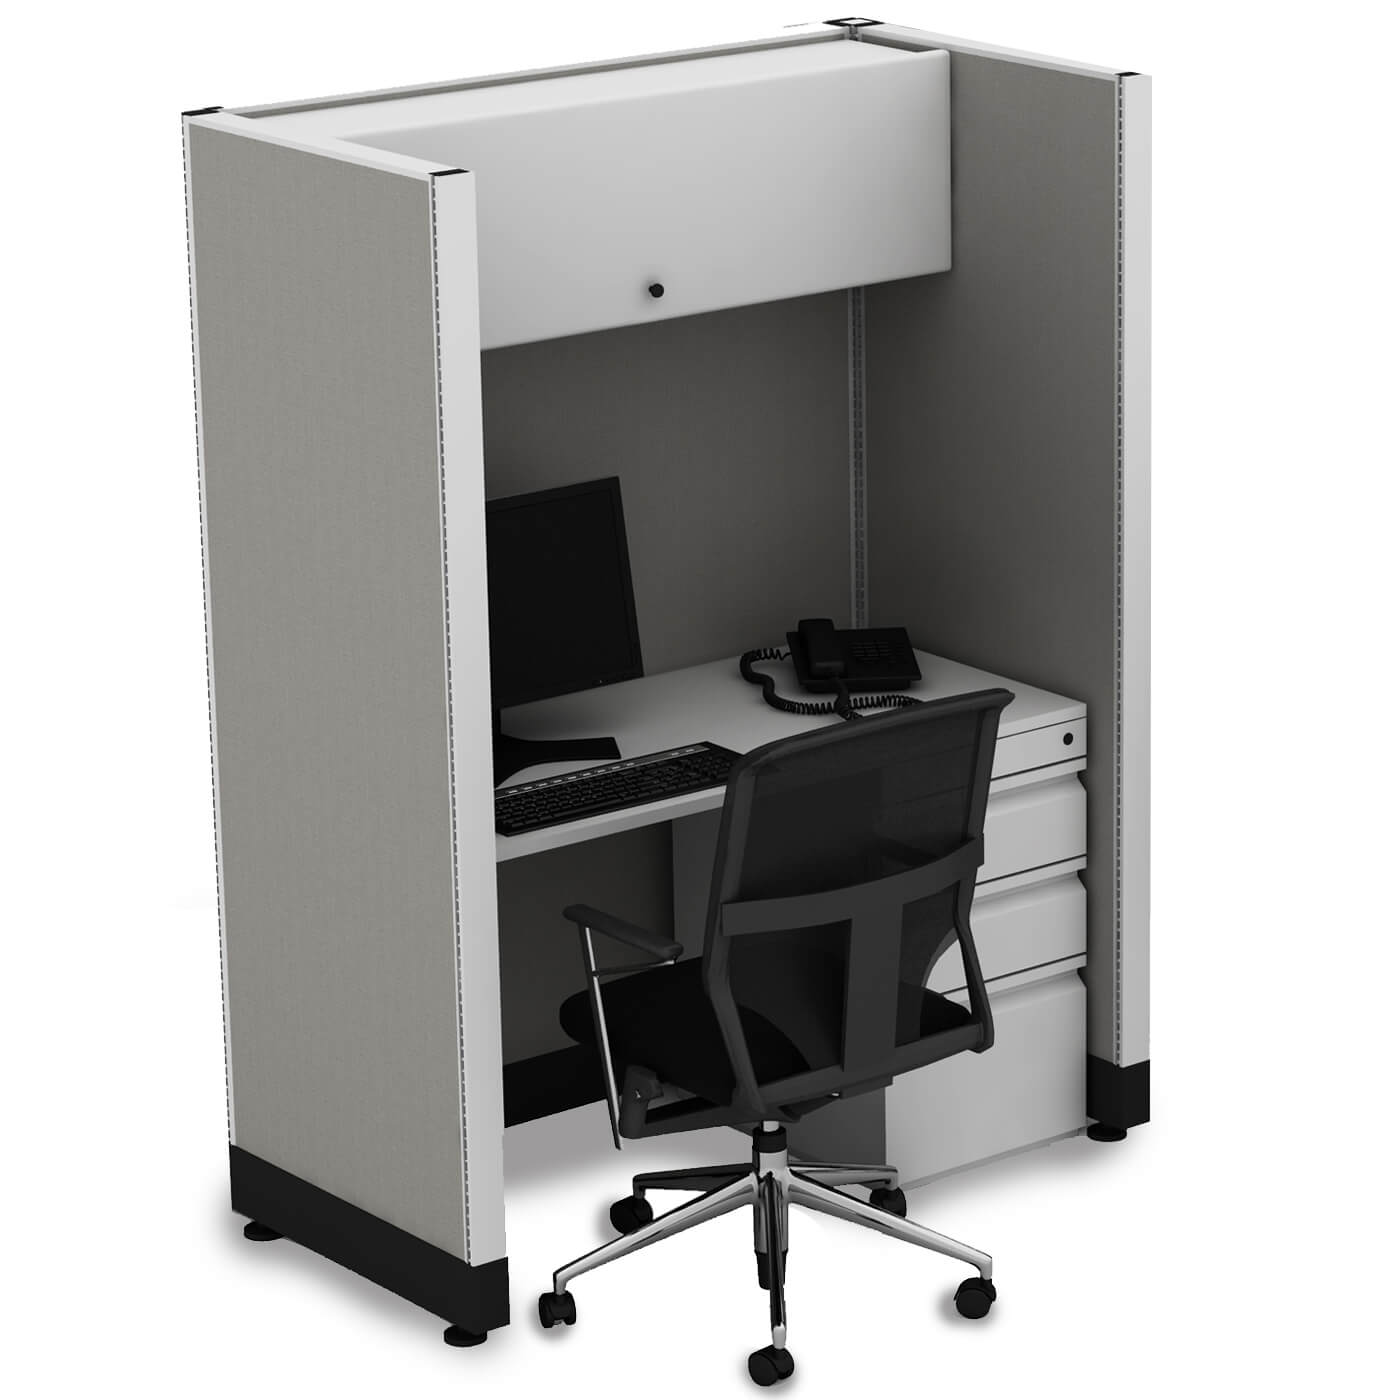 Hot desking tall cubicles single 1